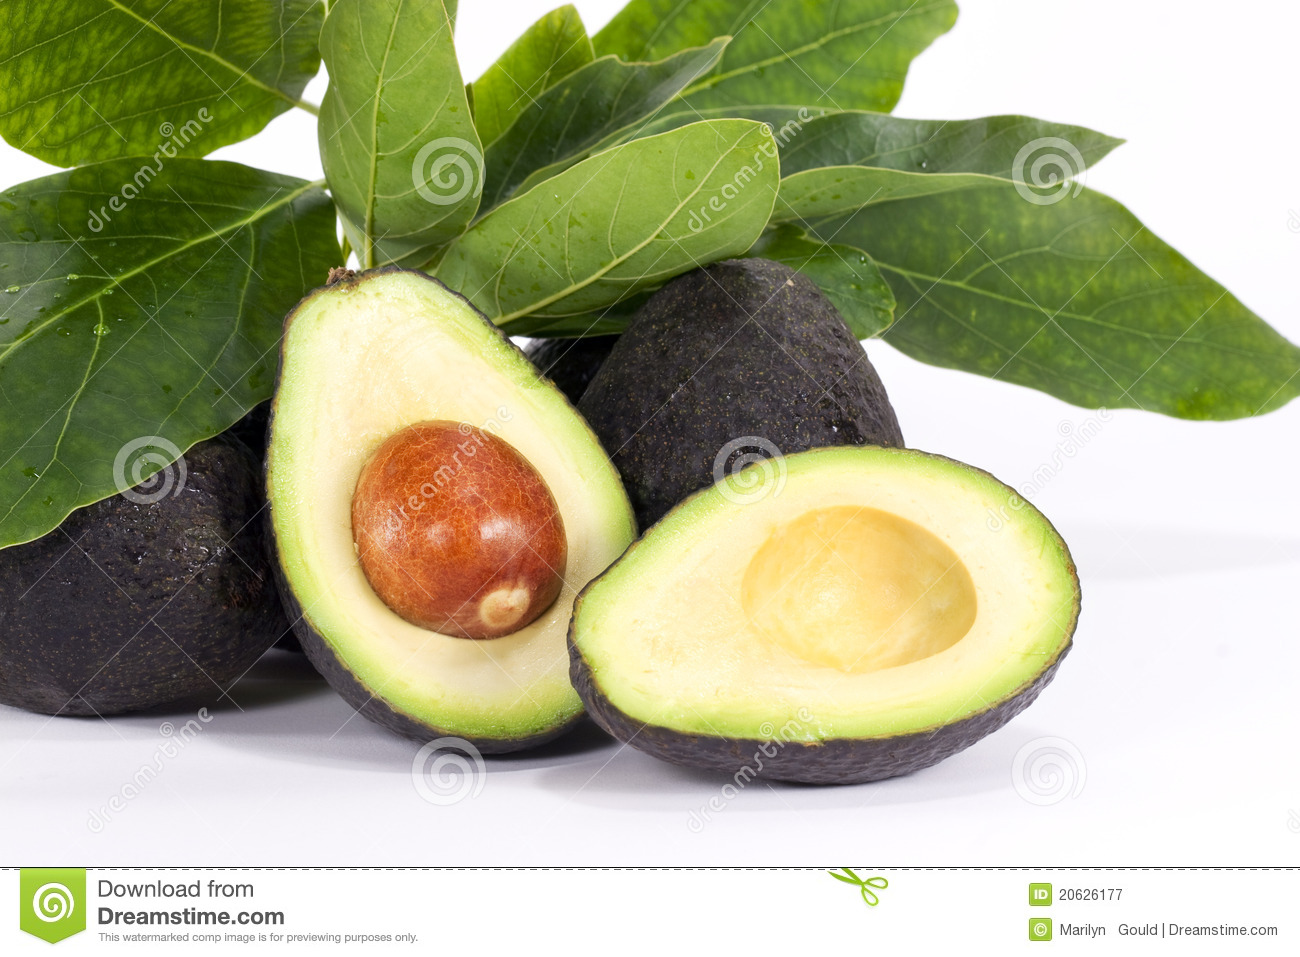 Metà dell avocado